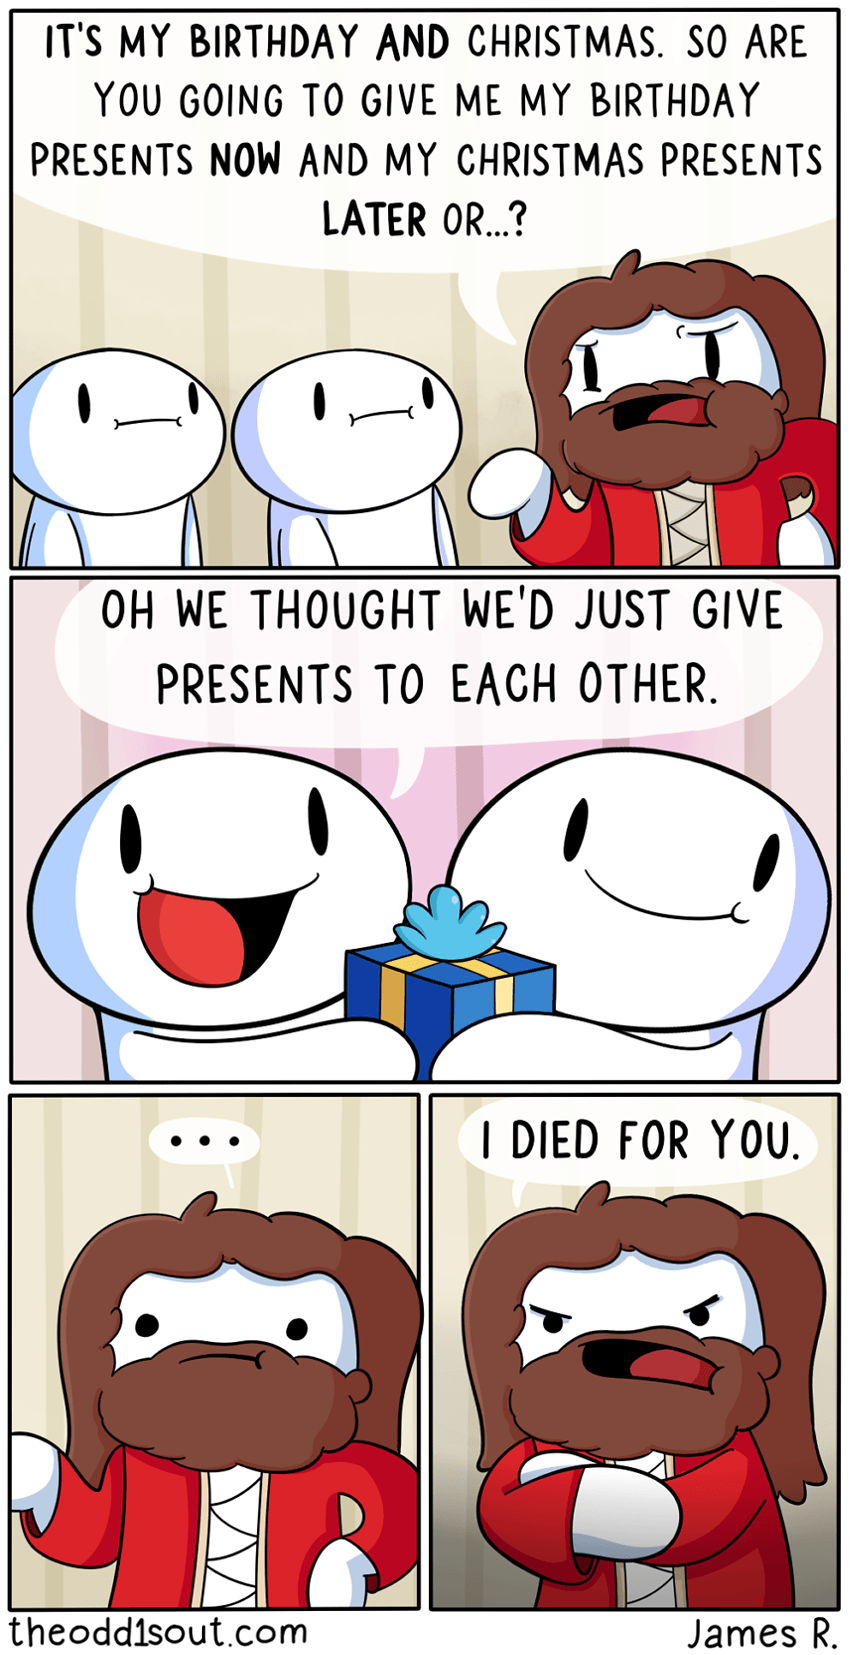 Christmas is Jesus Birthday, man | TheOdd1sOut | Know Your Meme